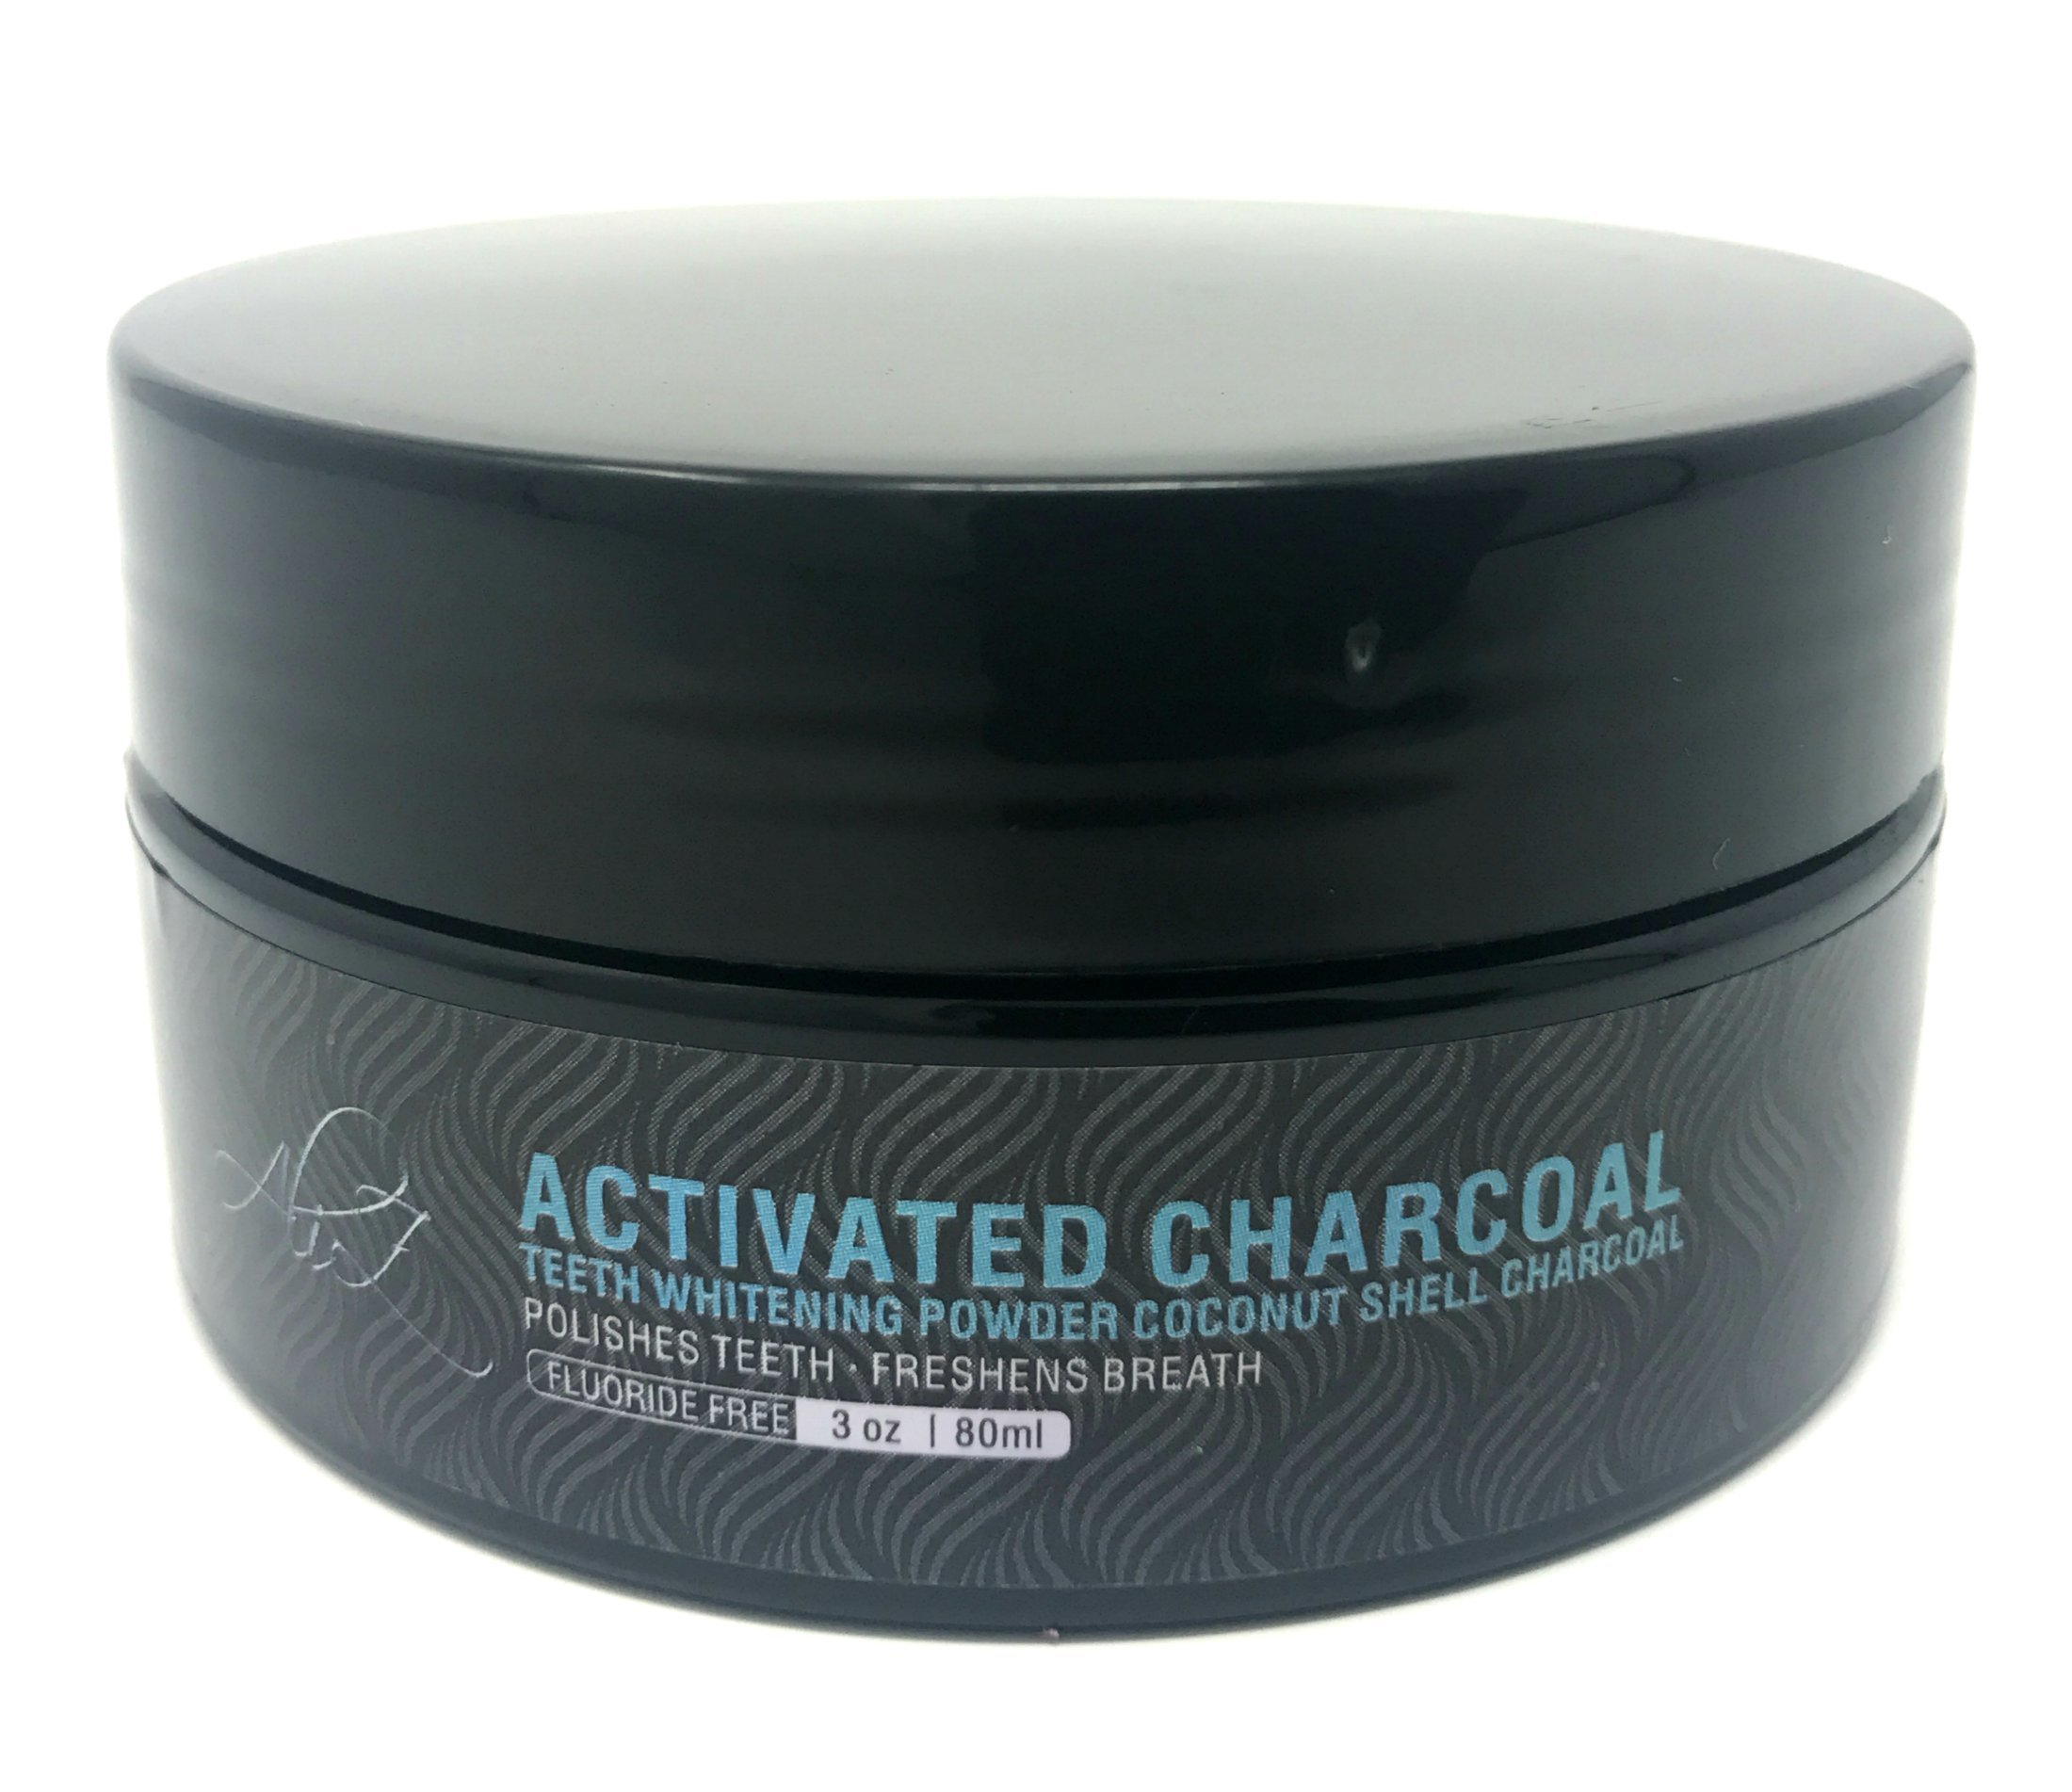 Teeth Whitening Activated Charcoal Powder - Natural Teeth Whitener with Coconut Charcoal, 3 oz